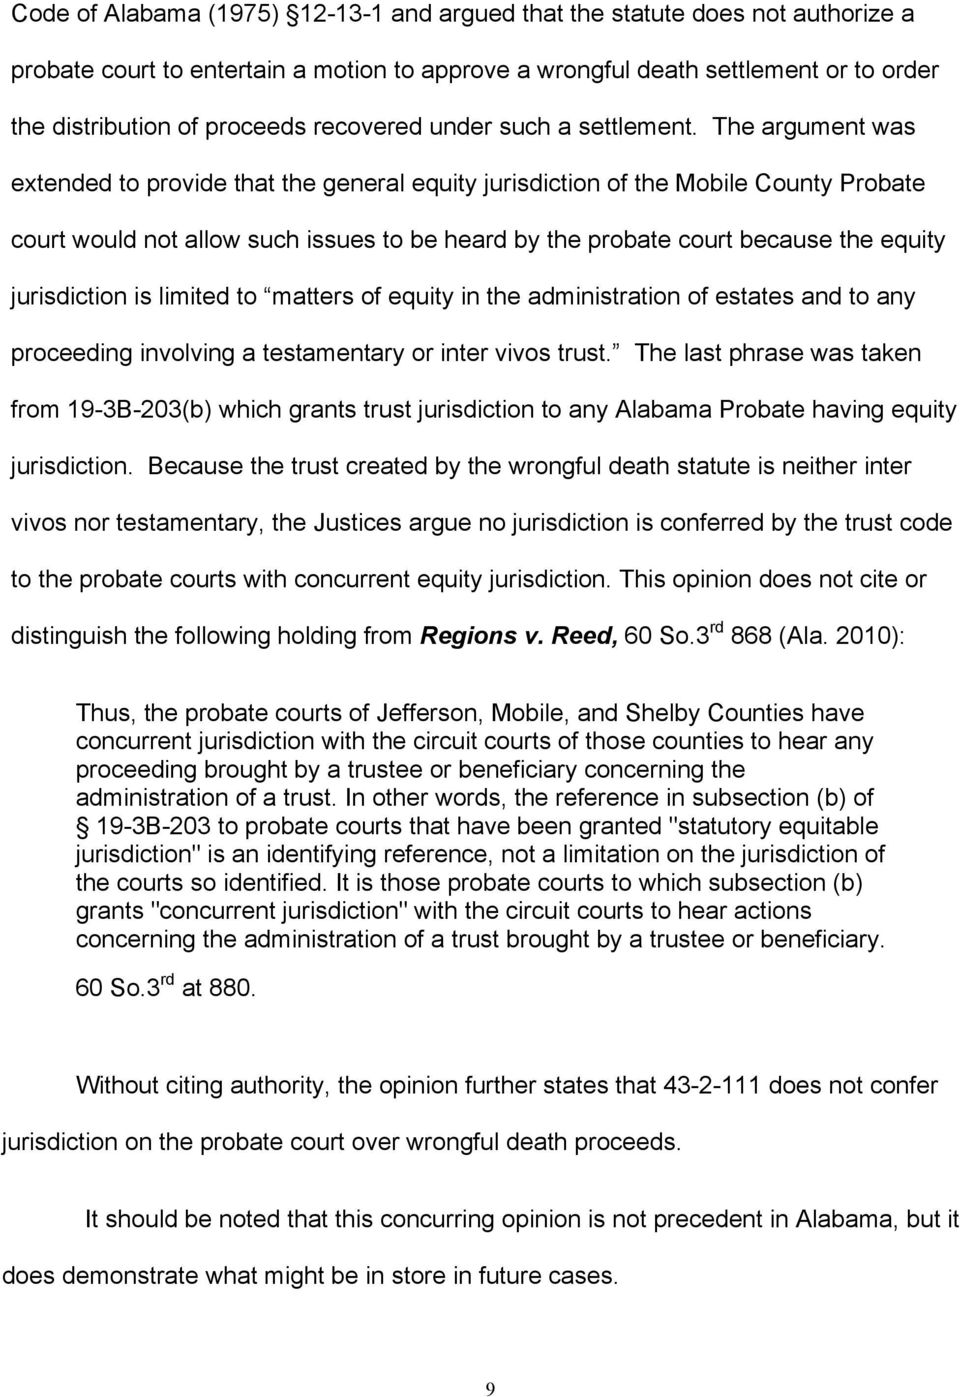 The argument was extended to provide that the general equity jurisdiction of the Mobile County Probate court would not allow such issues to be heard by the probate court because the equity